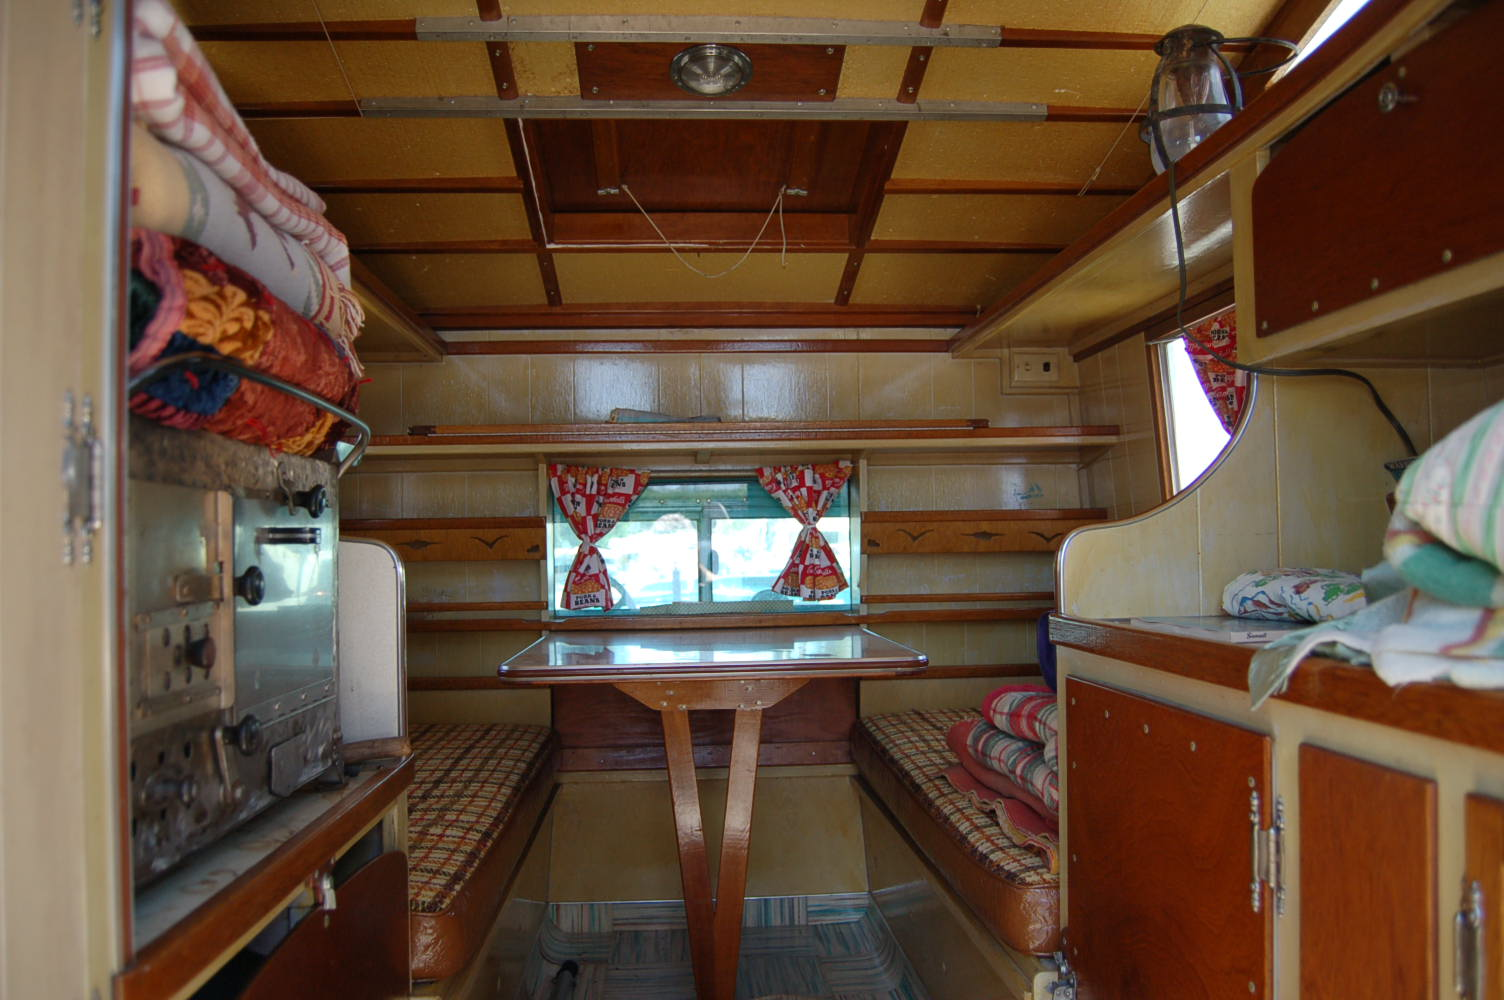 Spectacular nautical inspired interior woodwork on a unique camper on th ebaqck of a 1960 international